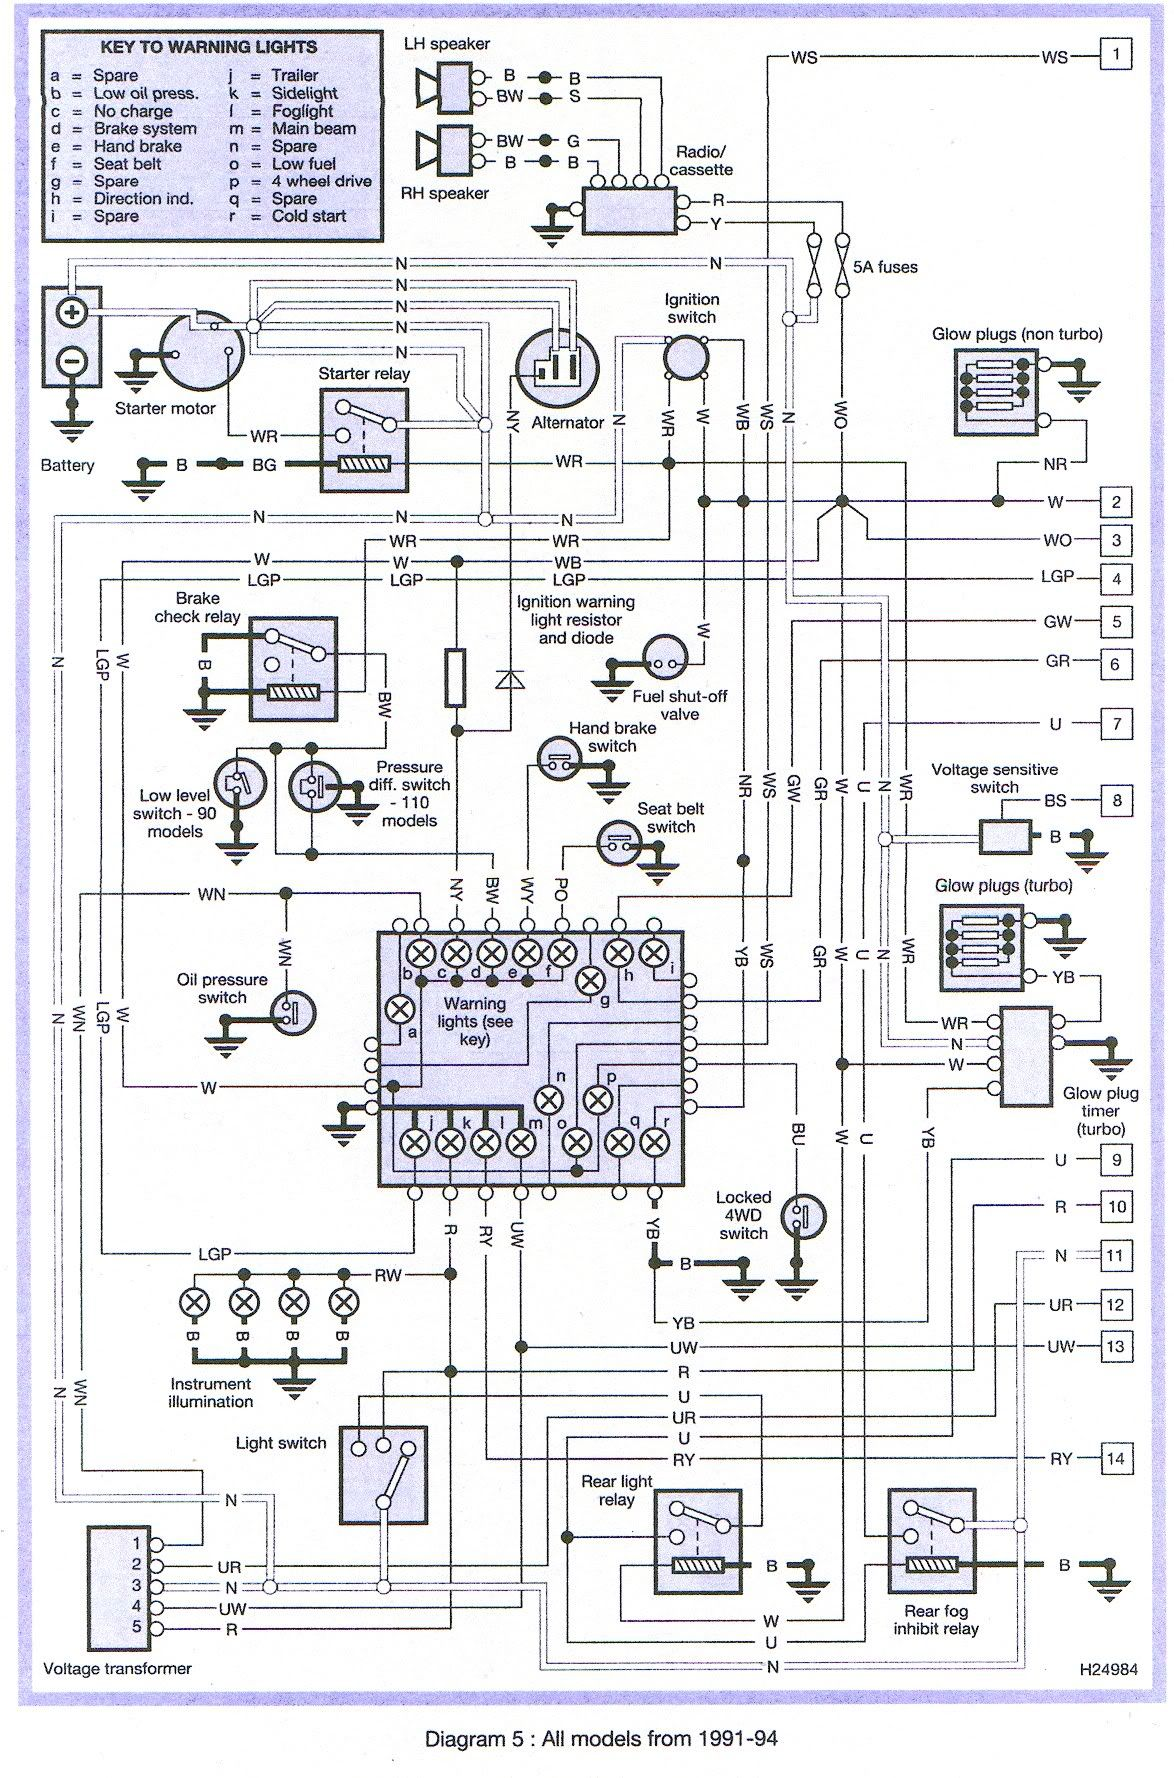 land rover discovery wiring diagram | manual repair with ... wiring diagram 97 land rover discovery audio wiring diagram 2006 land rover #10